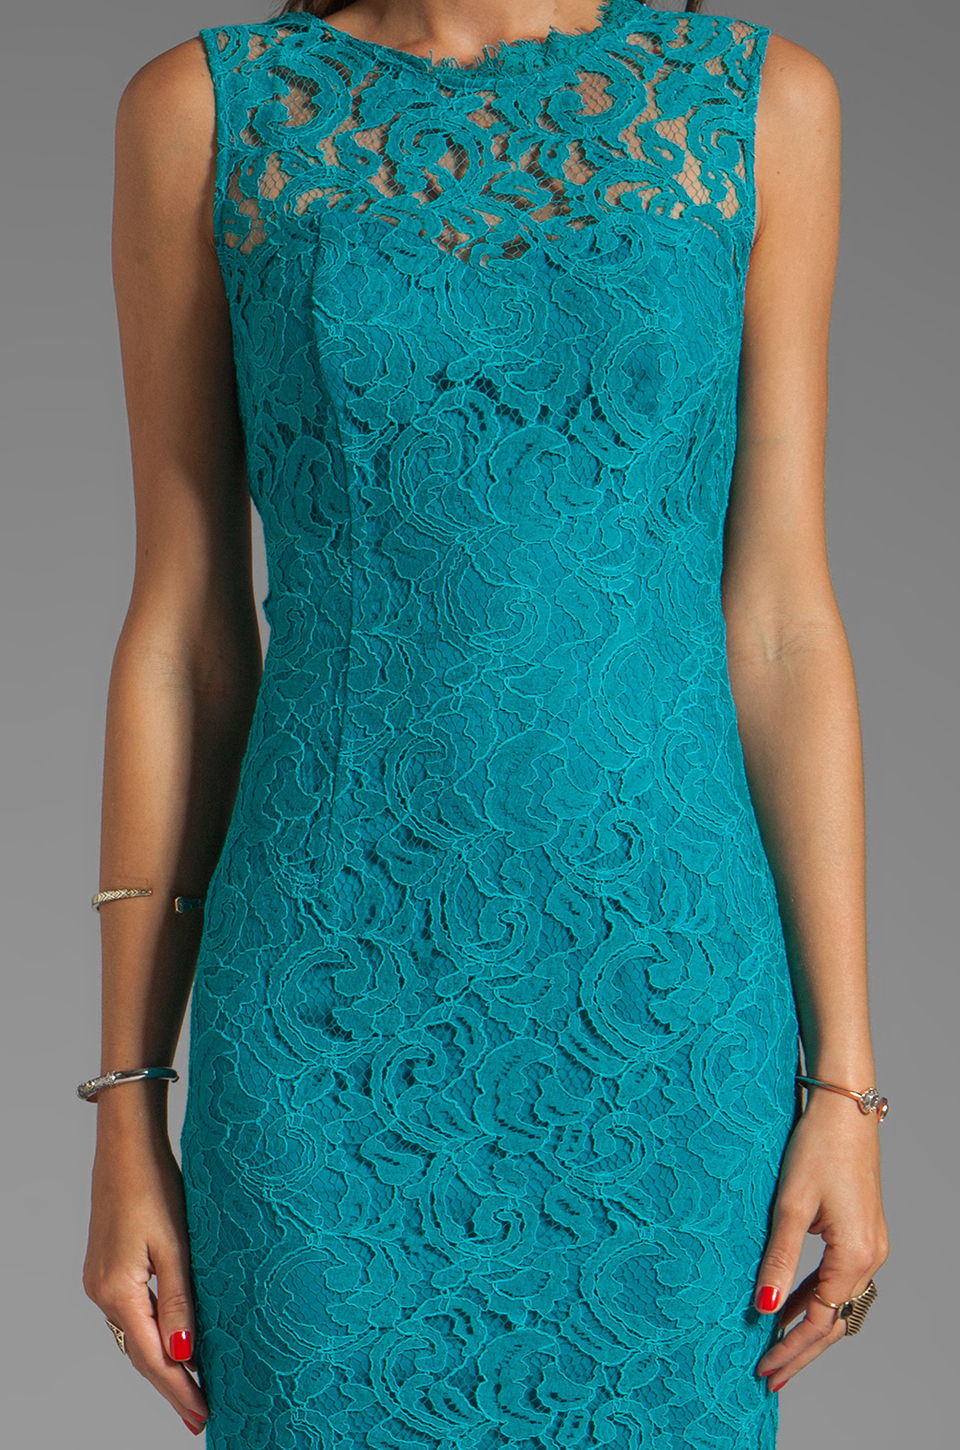 Lyst Dolce Vita Tamia Teal Lace Tank Dress In Teal In Blue